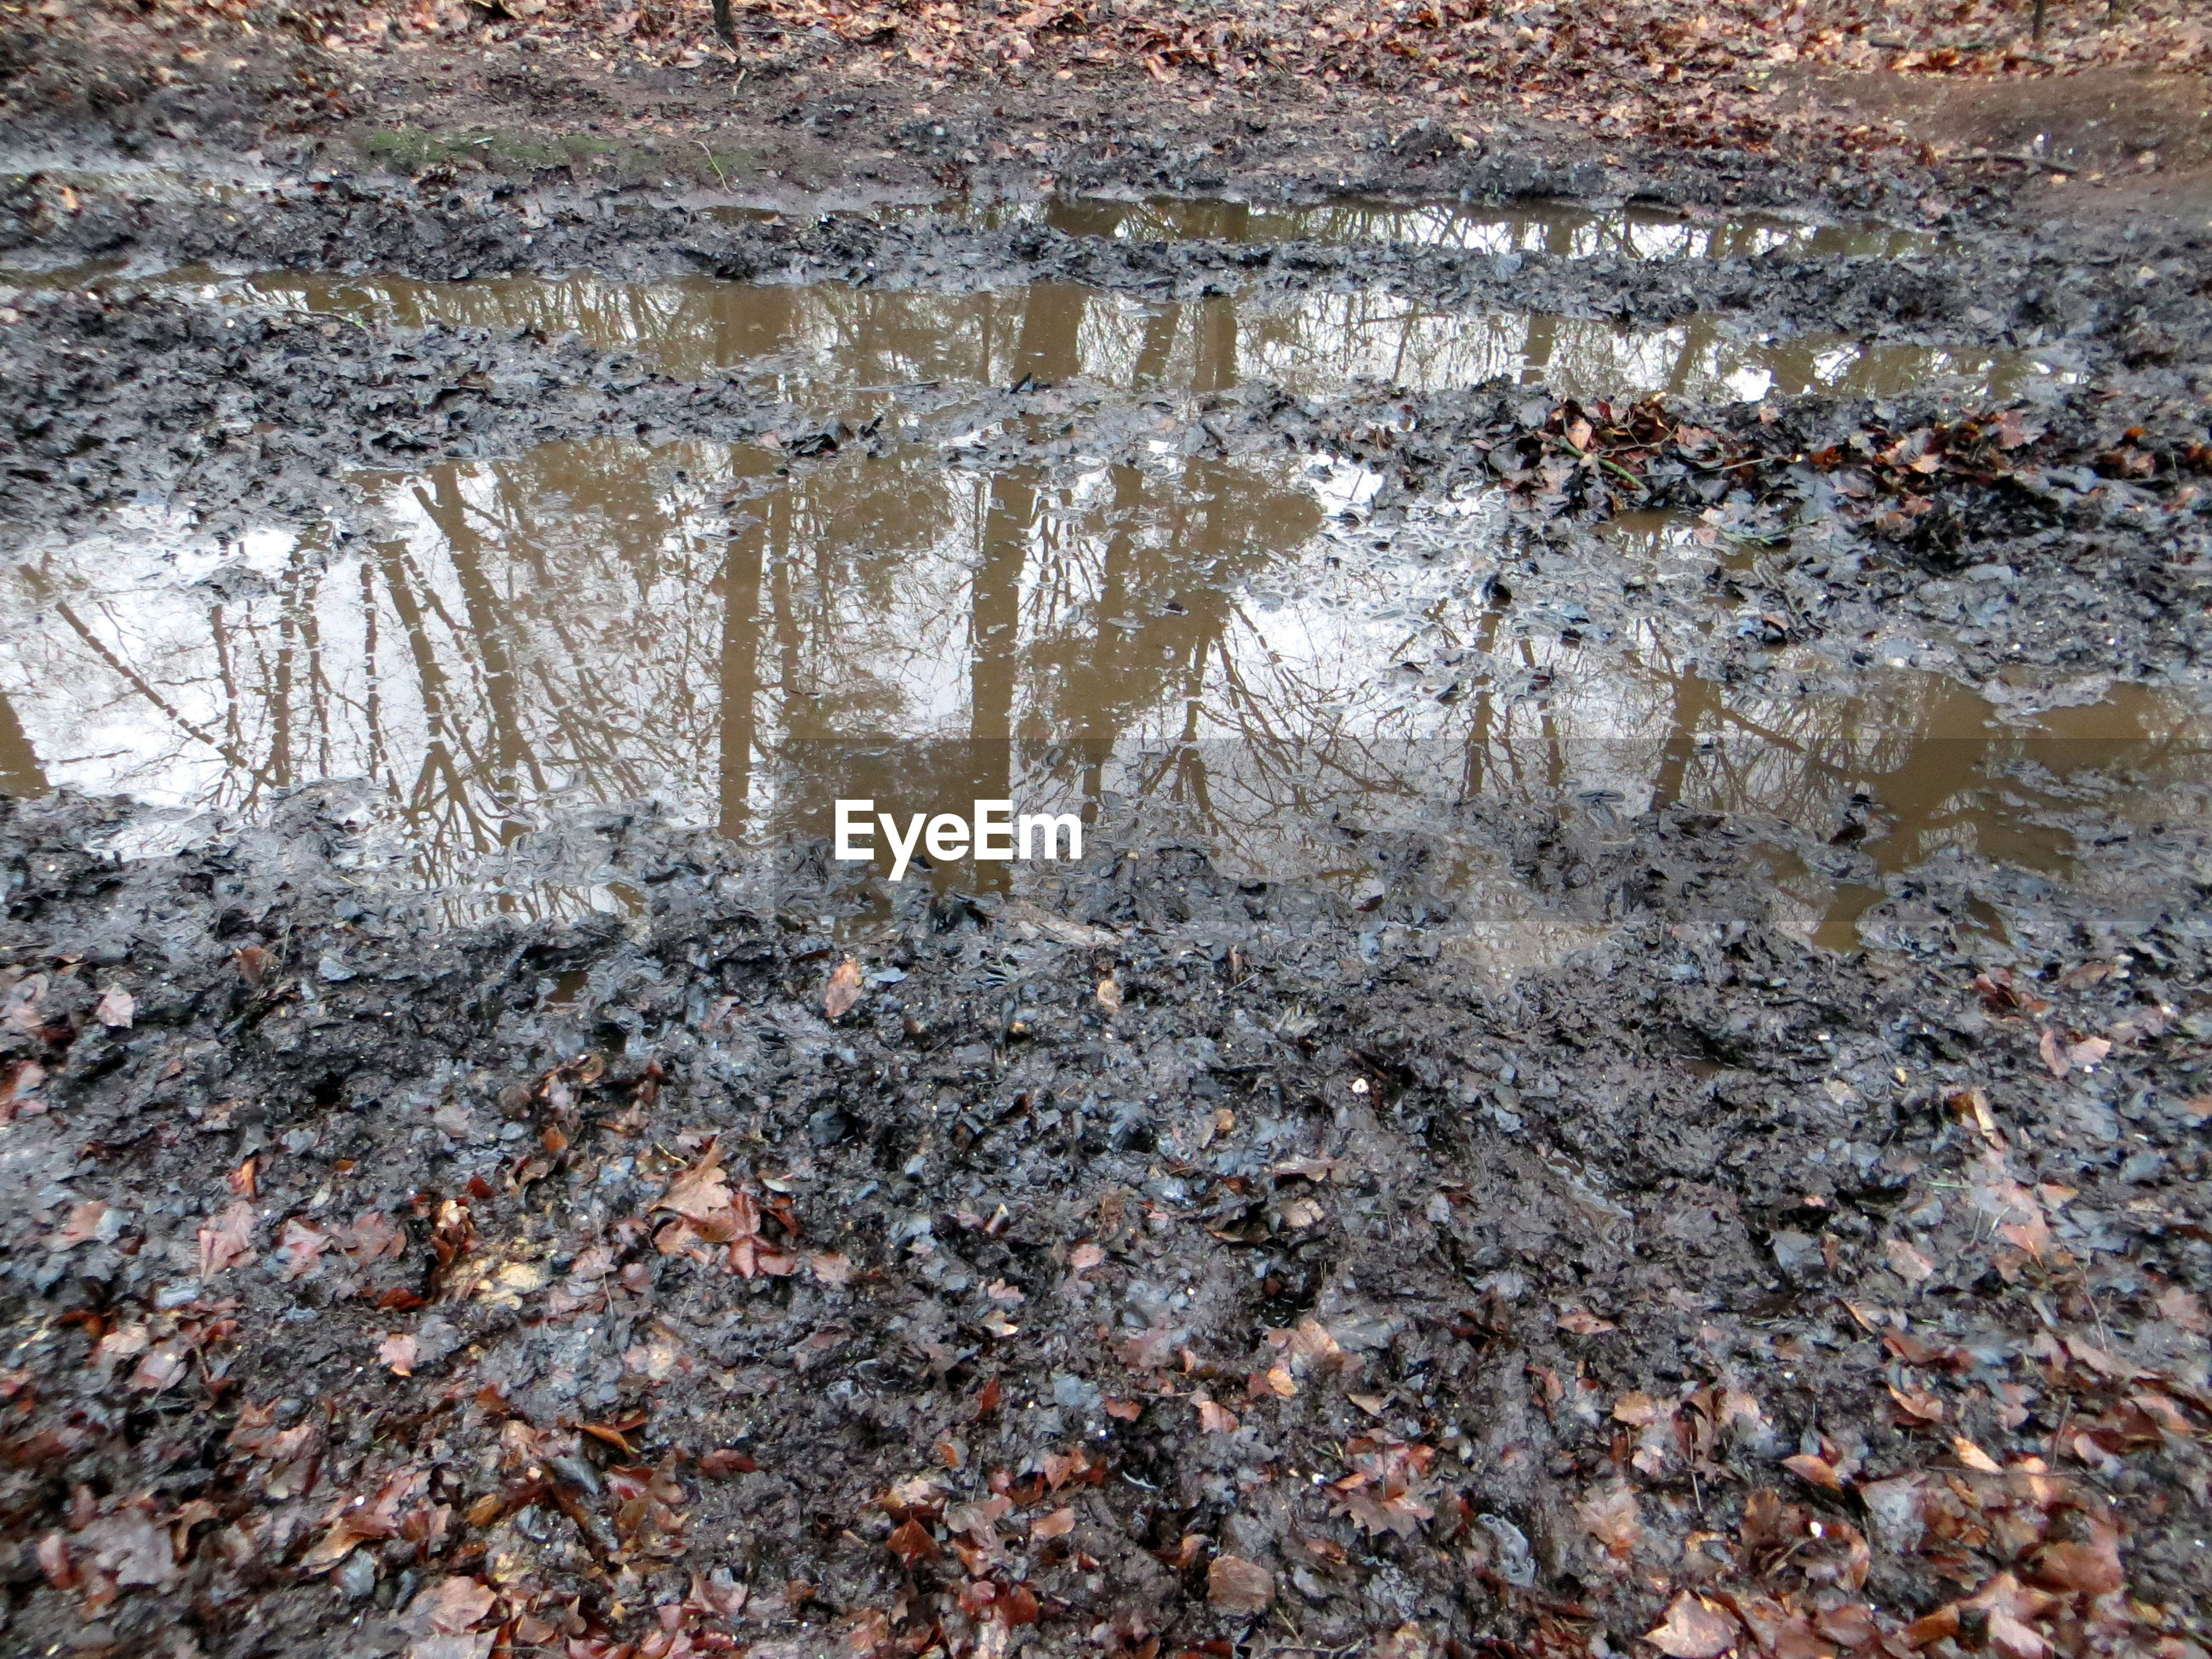 Reflection of trees in dirty puddle